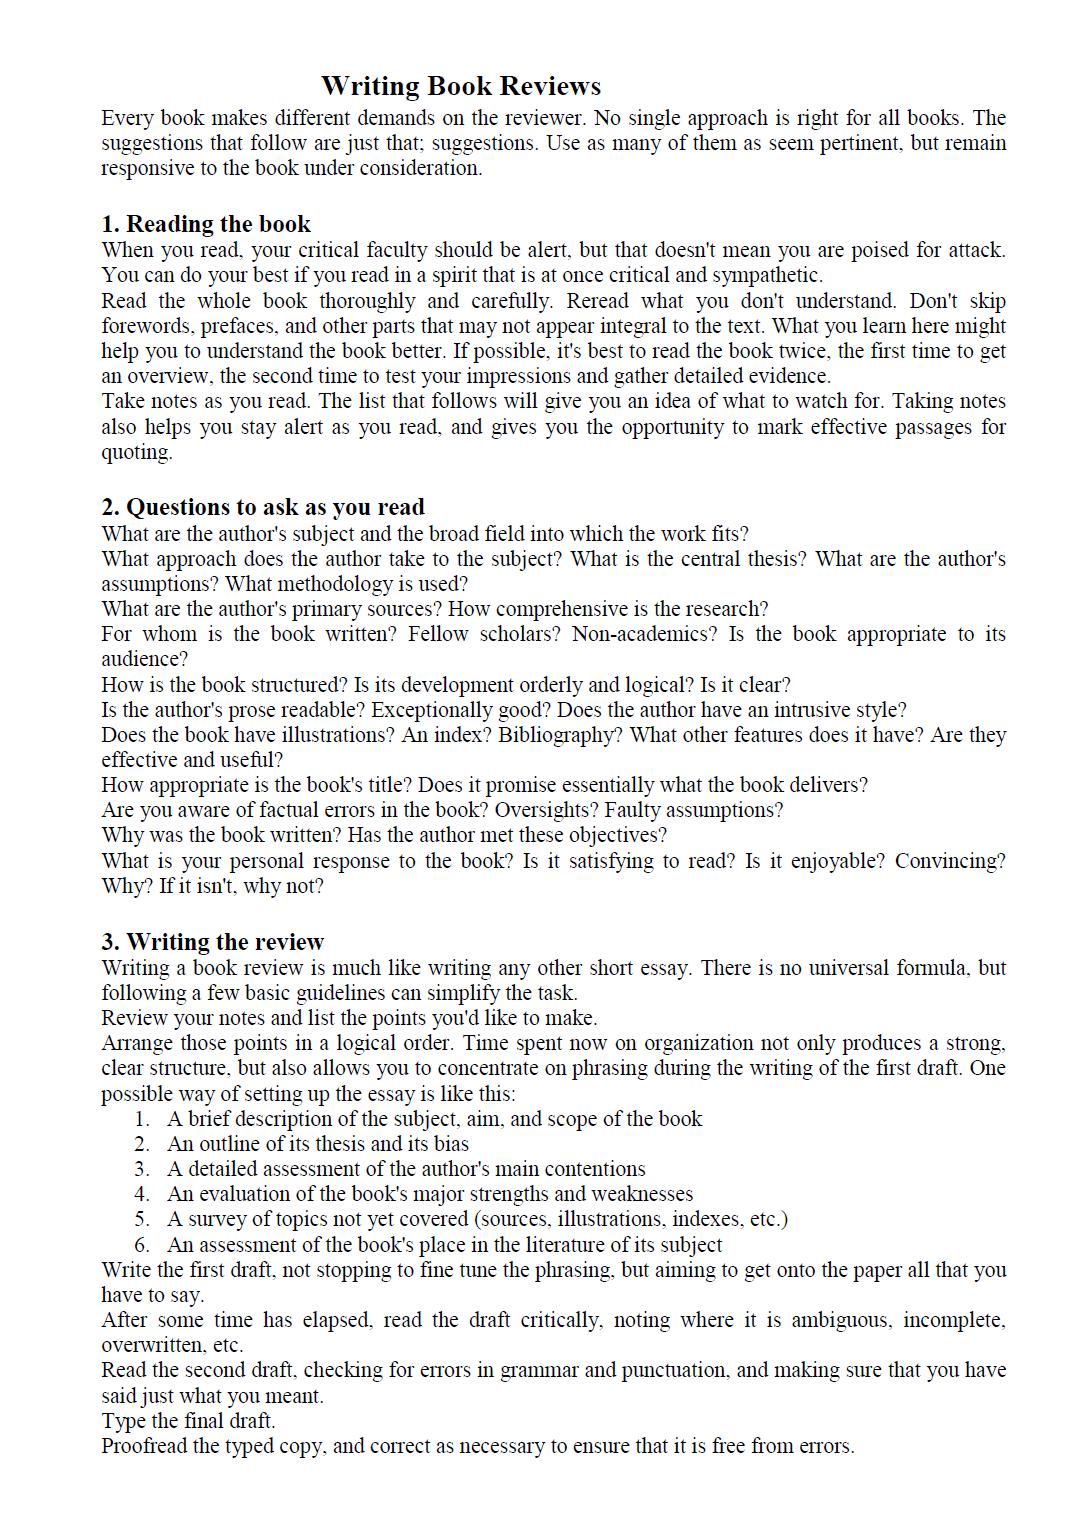 english essay book review Job materials and application essays application essays (and personal statements) resume writing tips cv writing tips  below are a few guidelines to help you write the introduction to your critical review  the introduction to a book review is always the place for you to establish your position as the reviewer (your thesis about the.